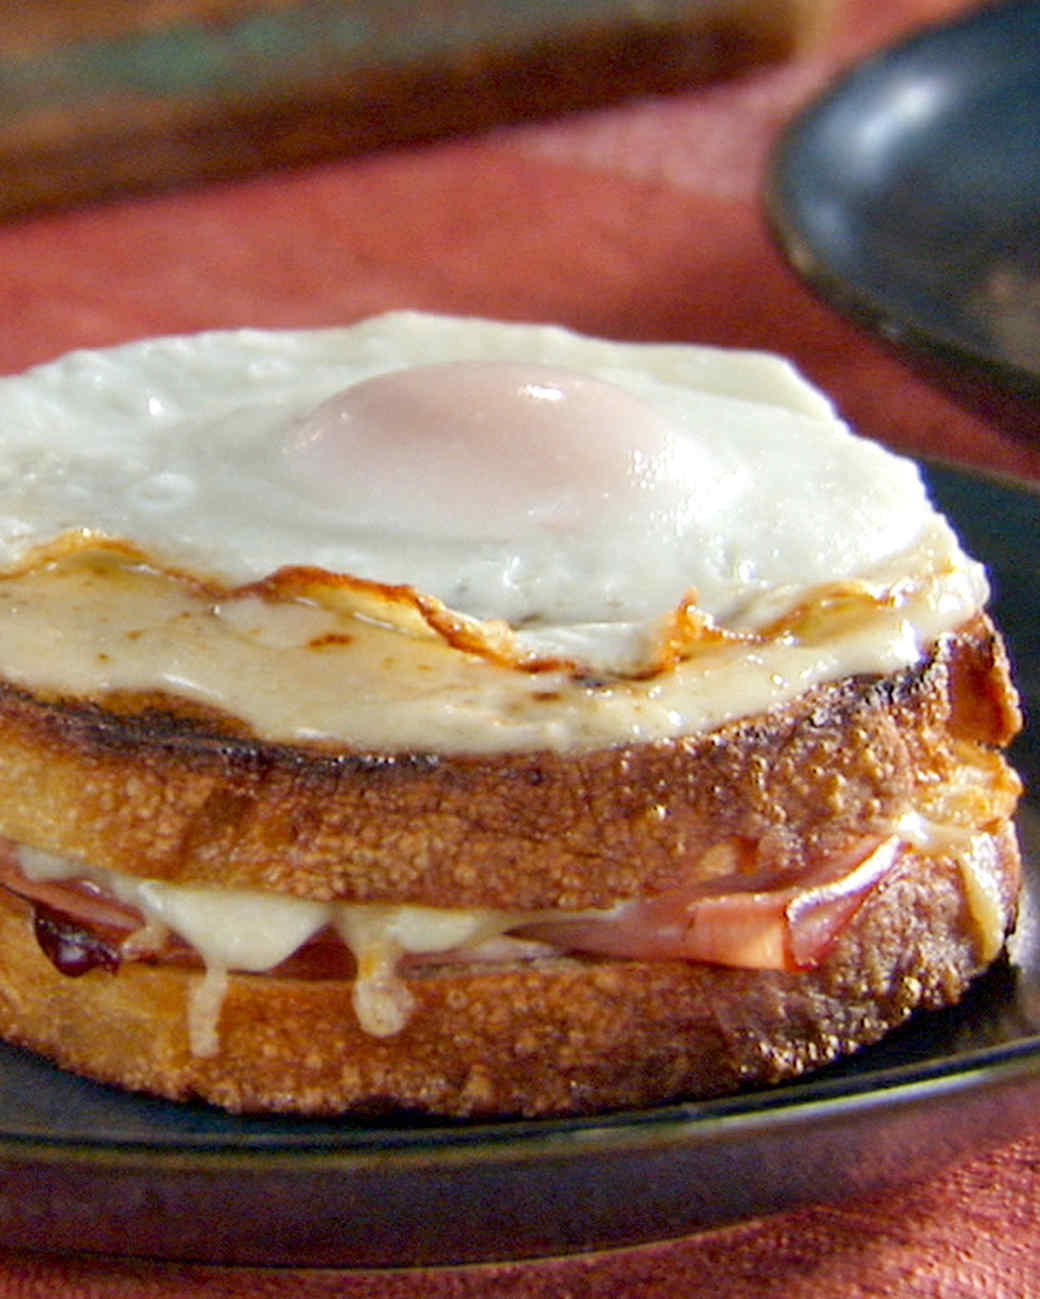 mh_1117_croque_madame_prev.jpg